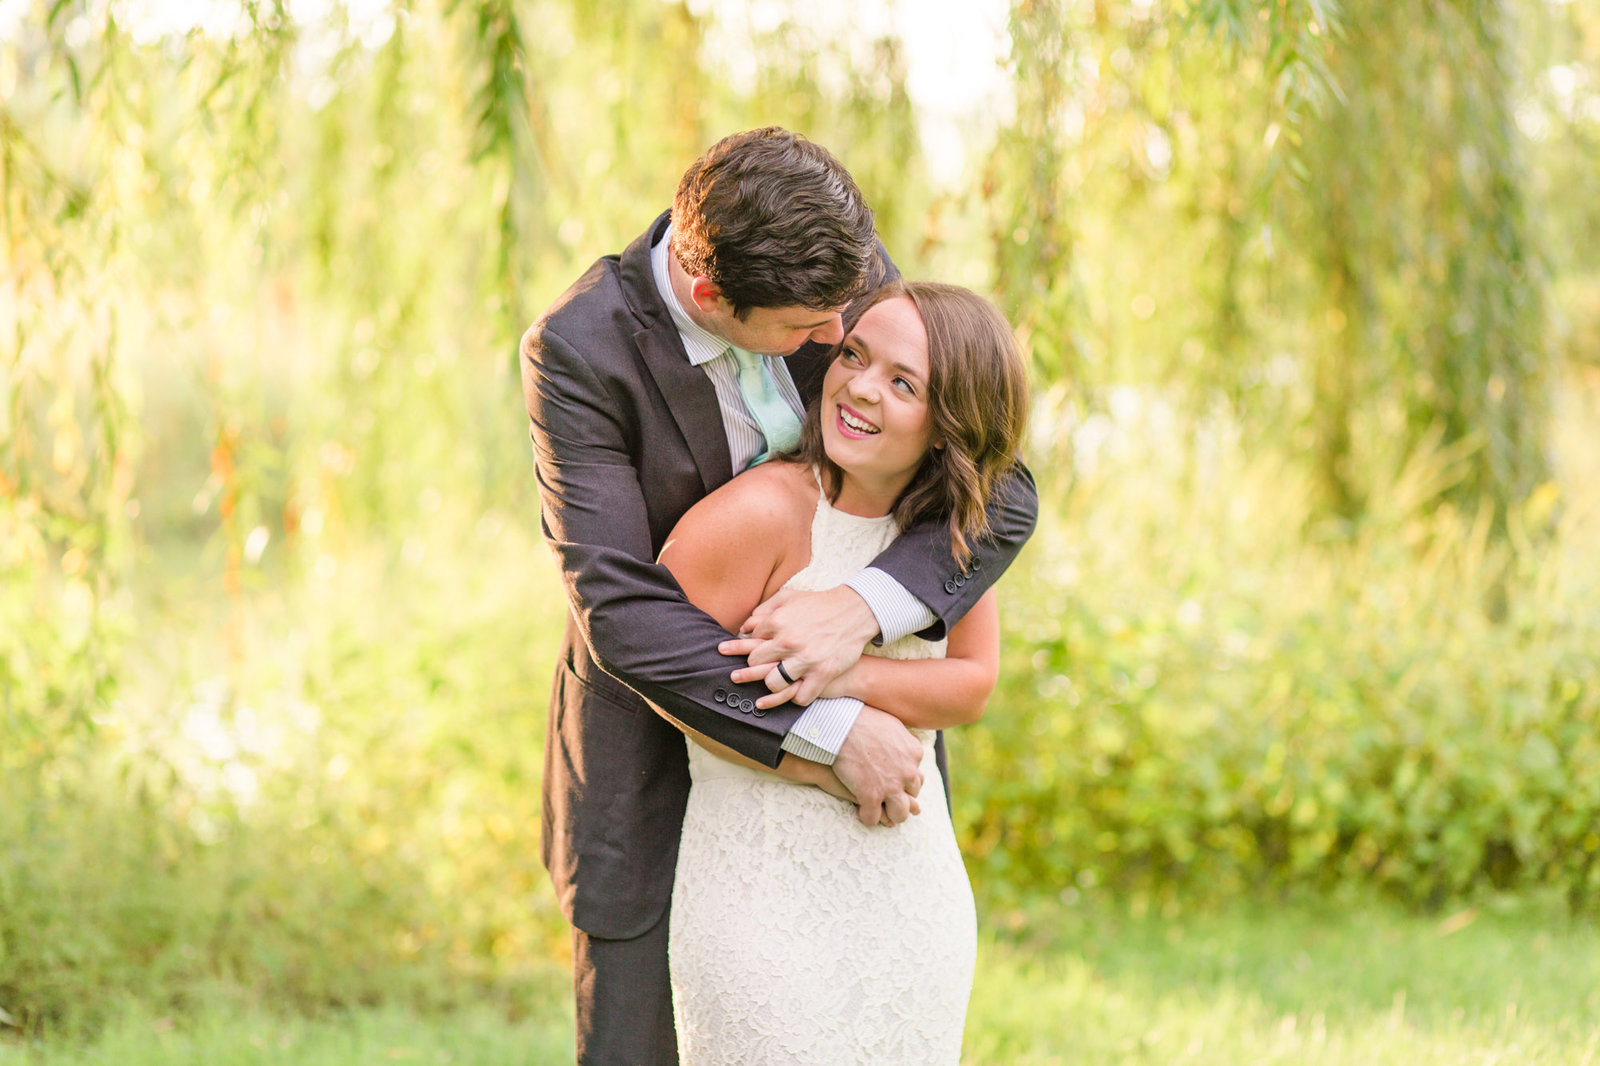 st-louis-wedding-photographer-alton-belleville-spring-stl-romantic-portraits-weddings-13